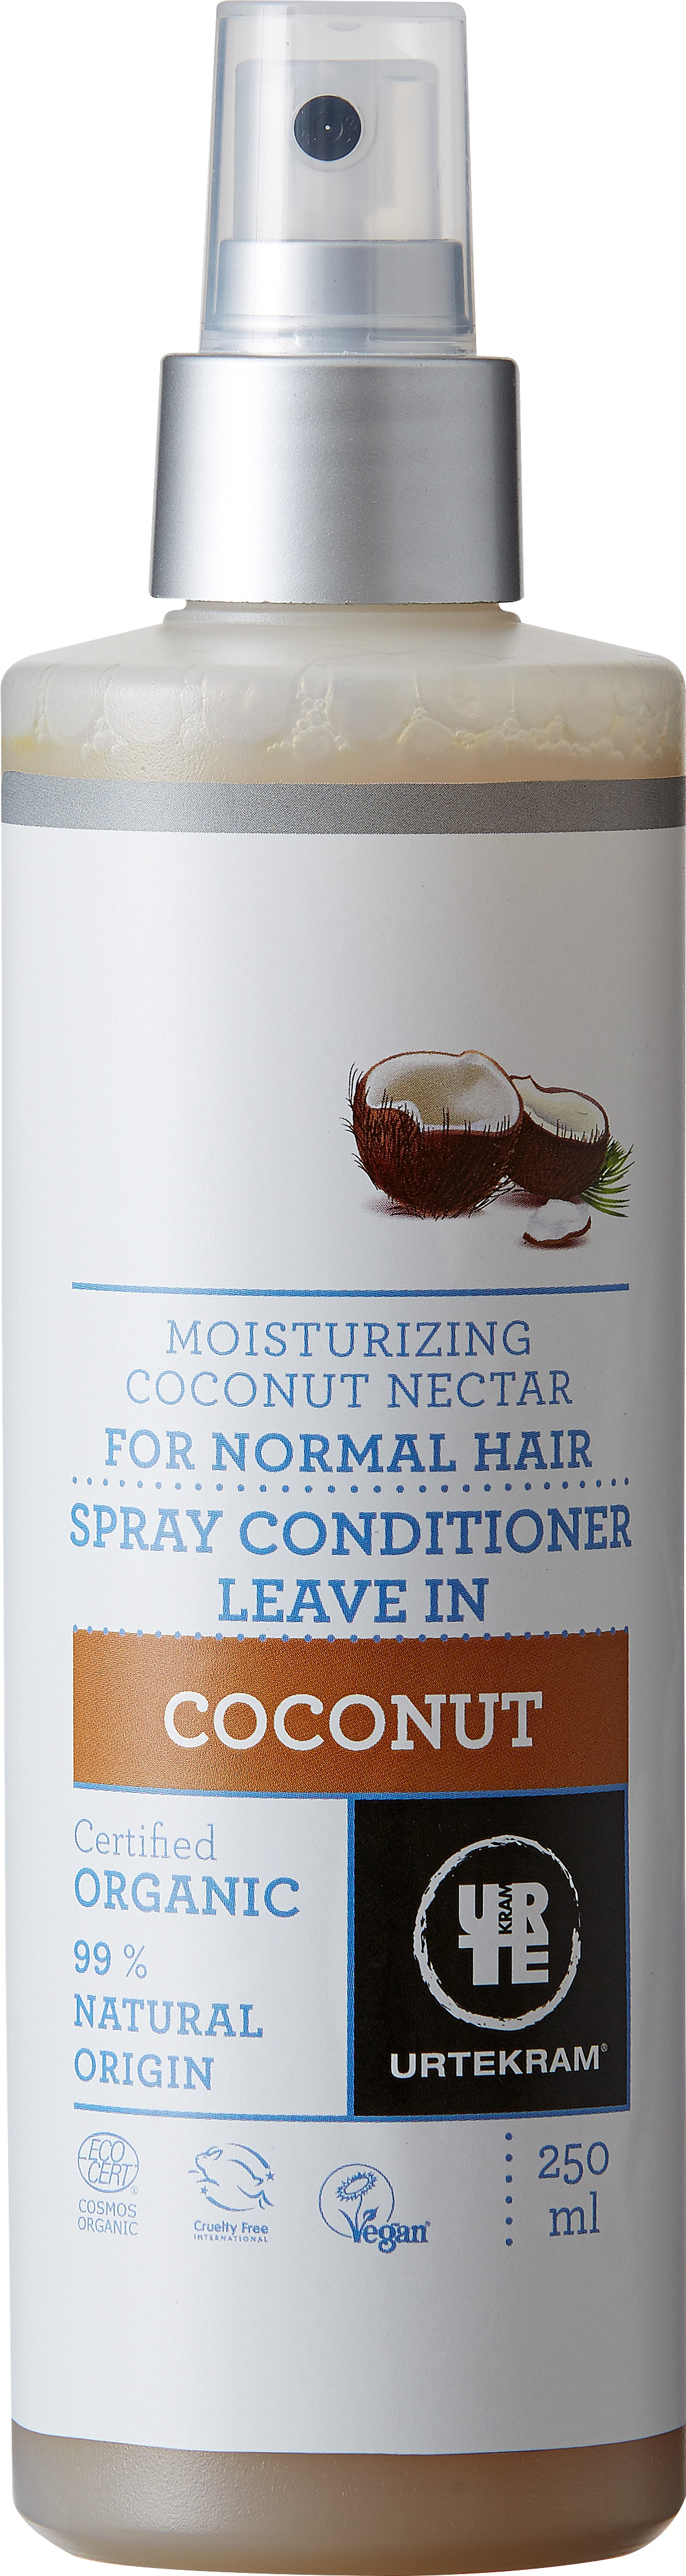 Urtekram Coconut Leave In Spray-Conditioner Organic